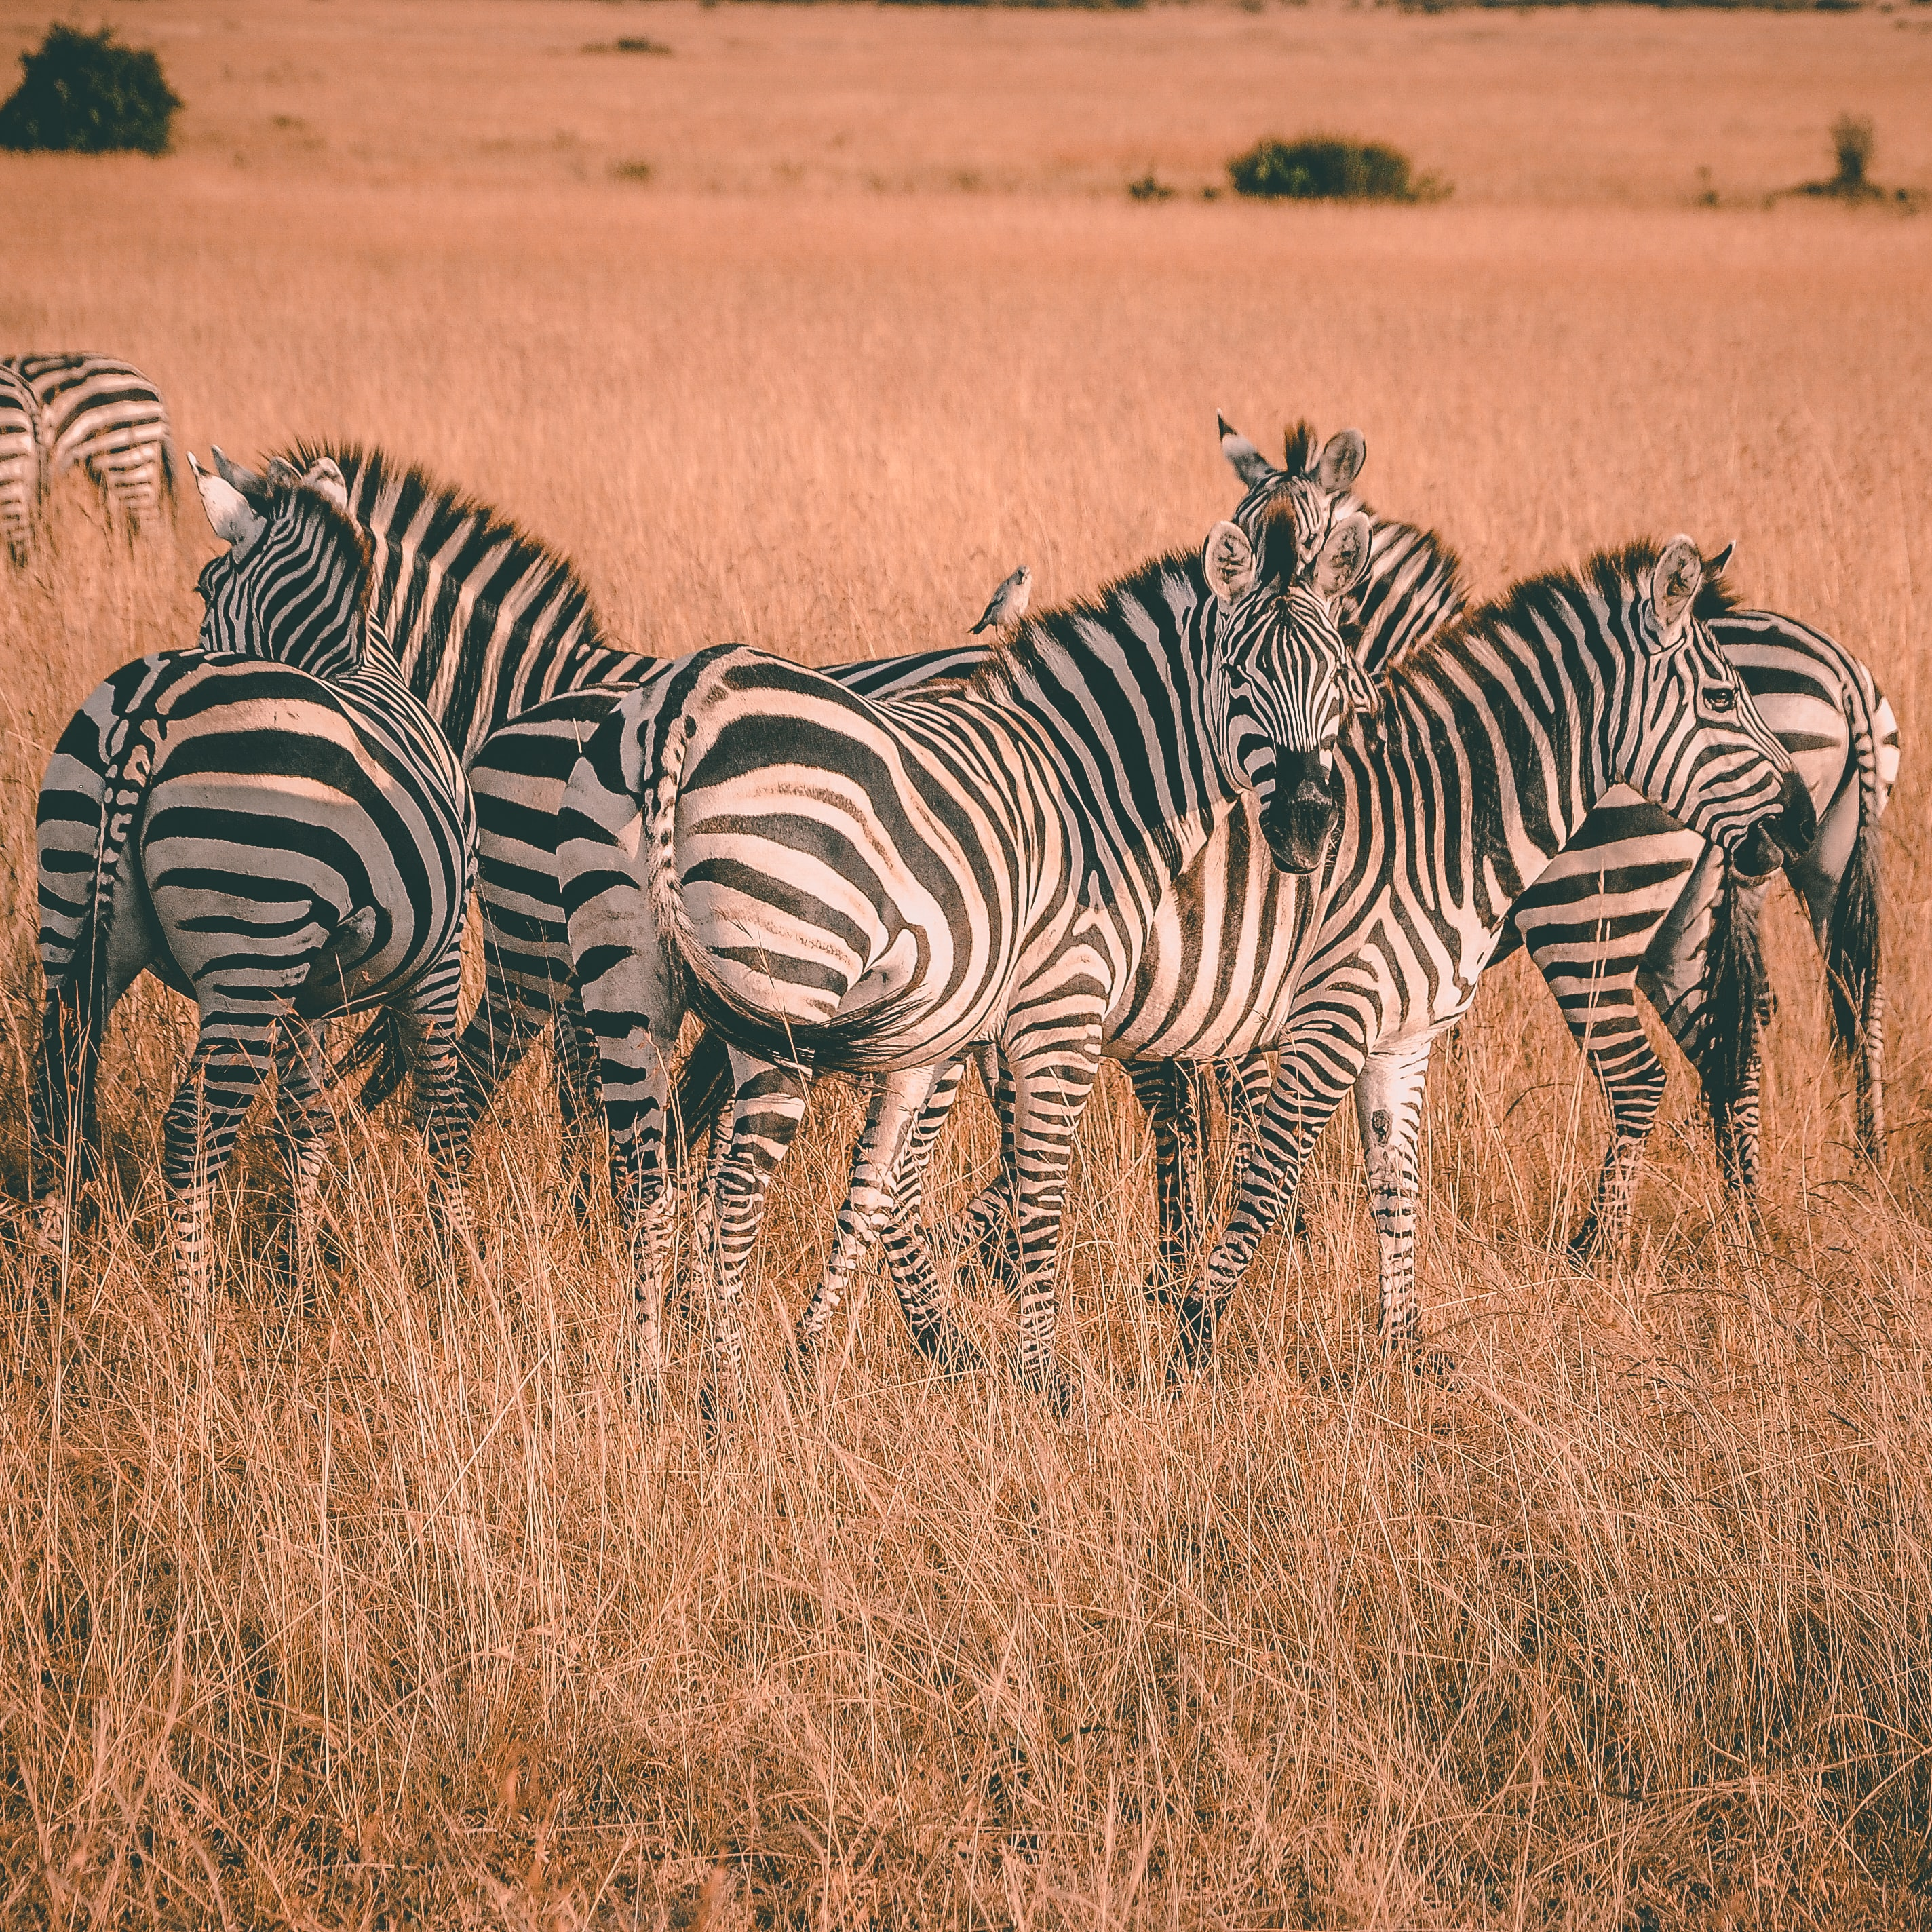 herd of zebras during daytime